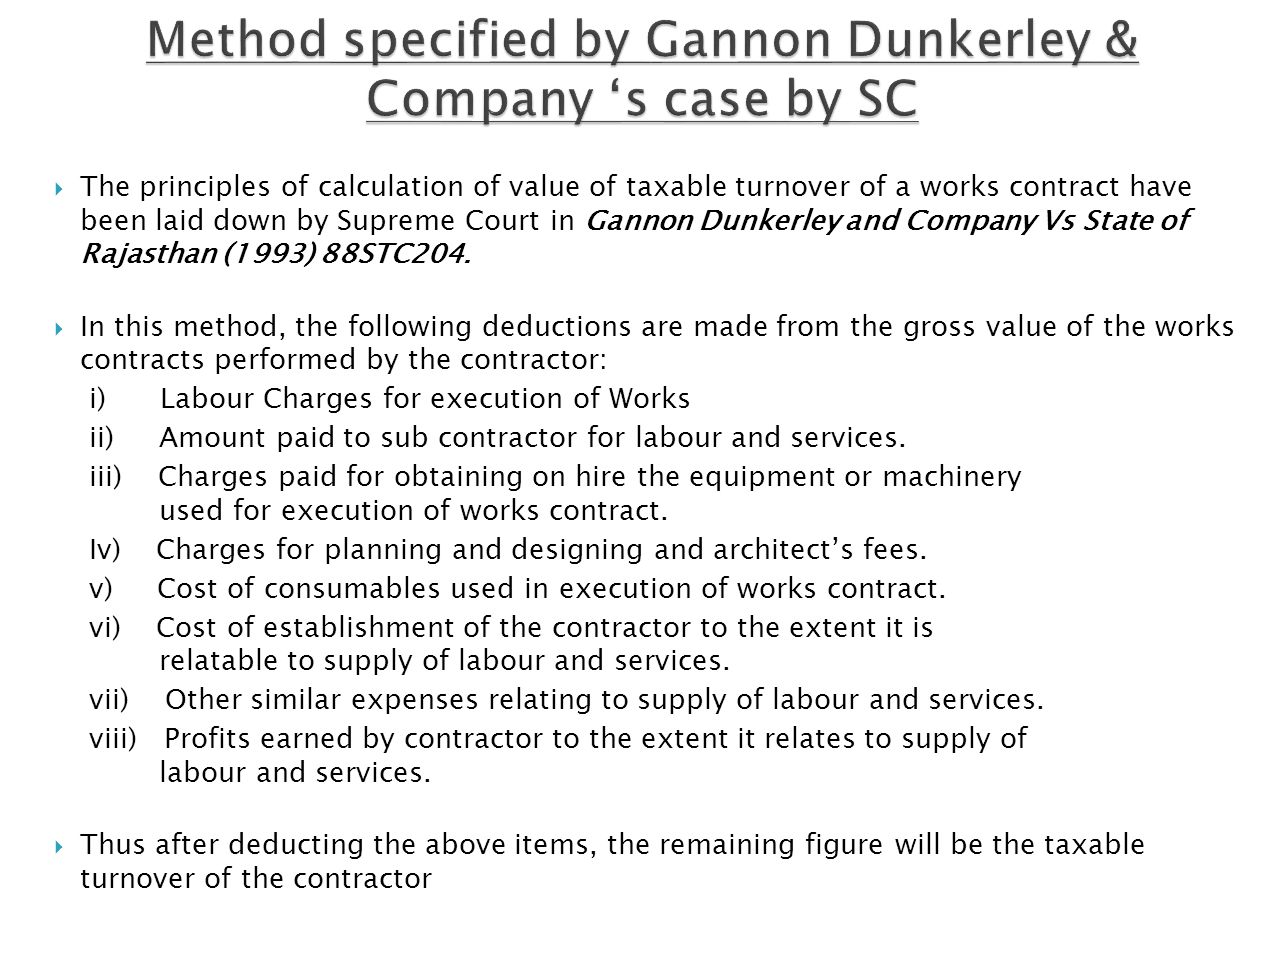 The principles of calculation of value of taxable turnover of a works contract have been laid down by Supreme Court in Gannon Dunkerley and Company Vs State of Rajasthan (1993) 88STC204.